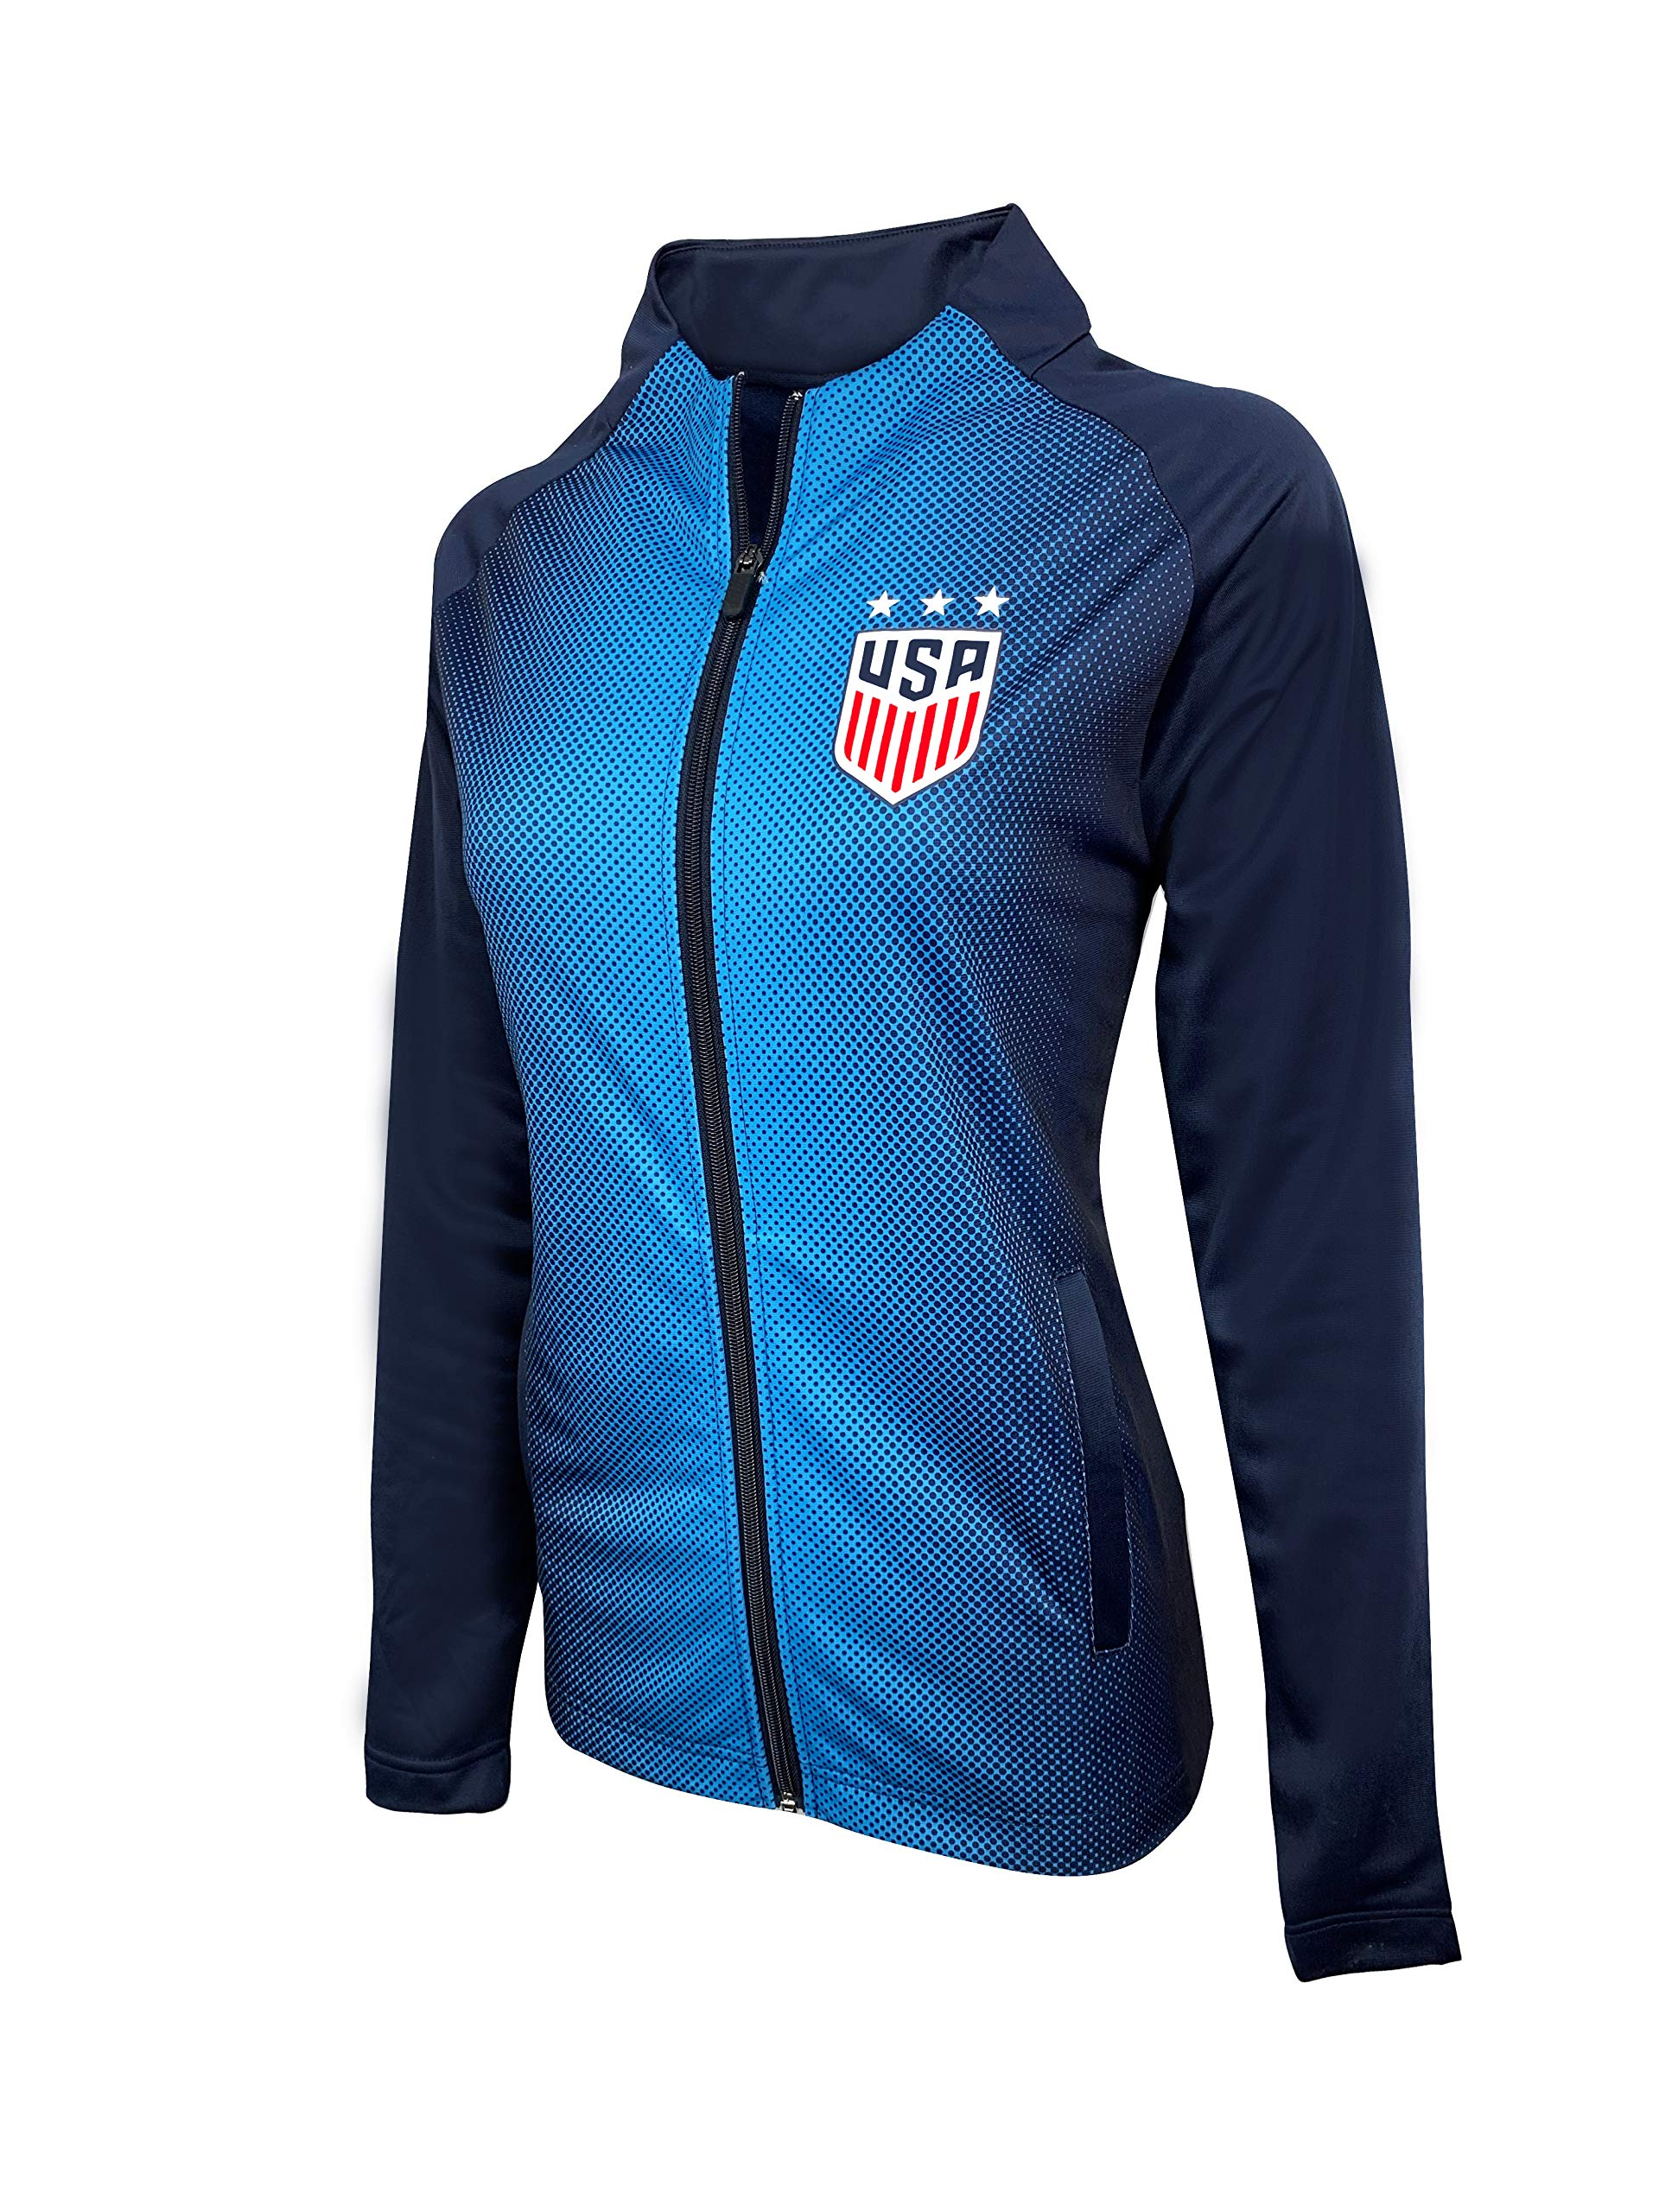 USA Women's Soccer Jacket, Women and Girls Sizes, Official USWNT Full-Zip Track Jacket (Small) Blue